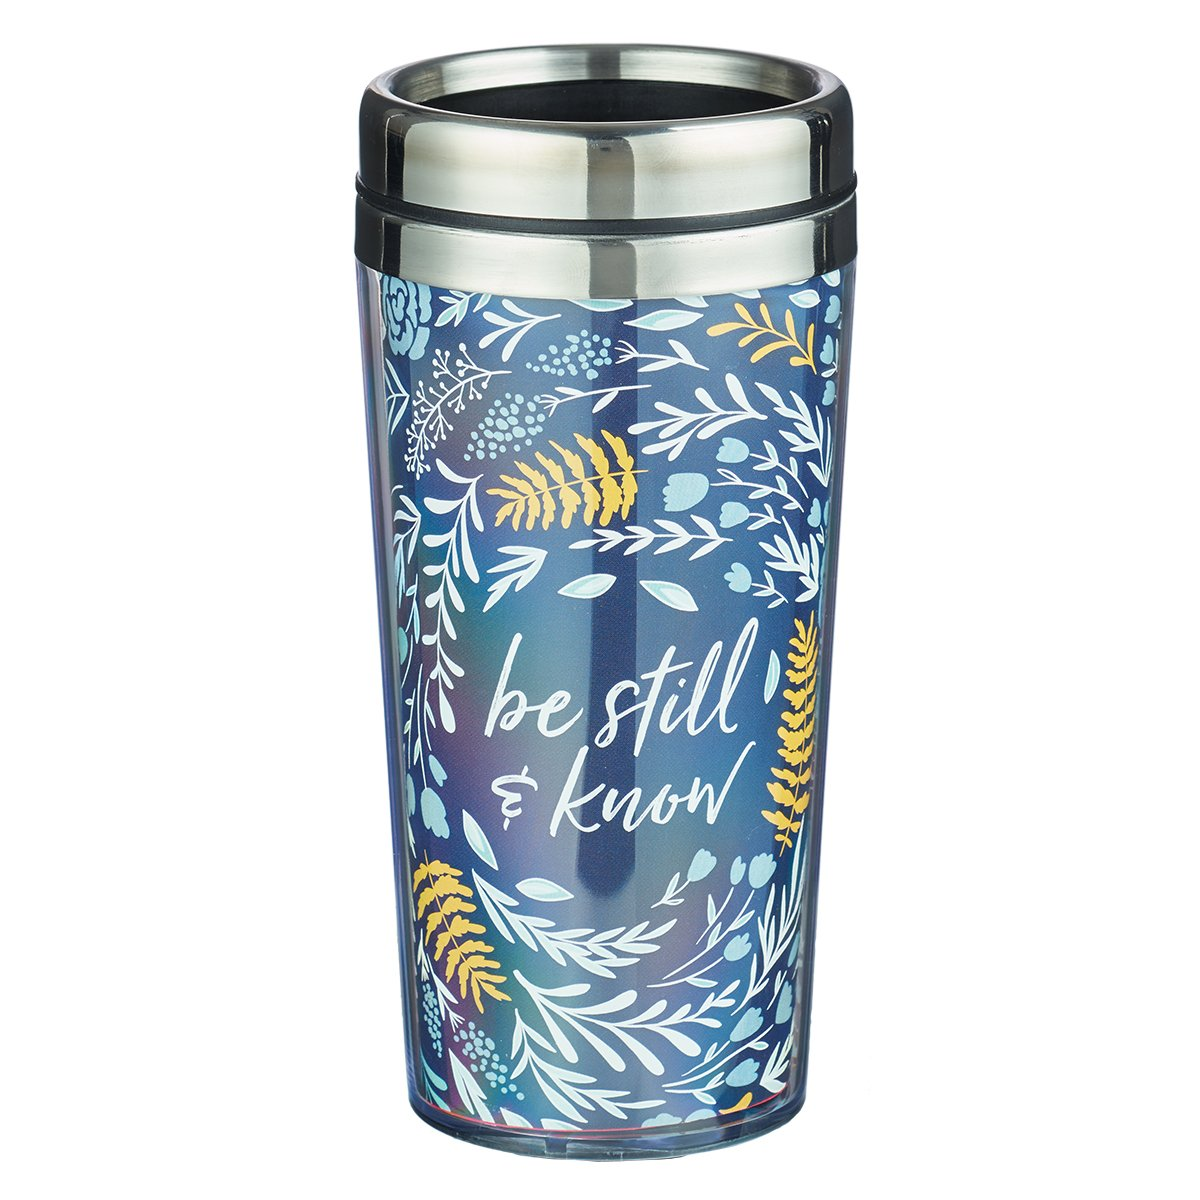 Coffee Travel Mug: Be Still - Psalm 46:10 by Christian Art Gifts